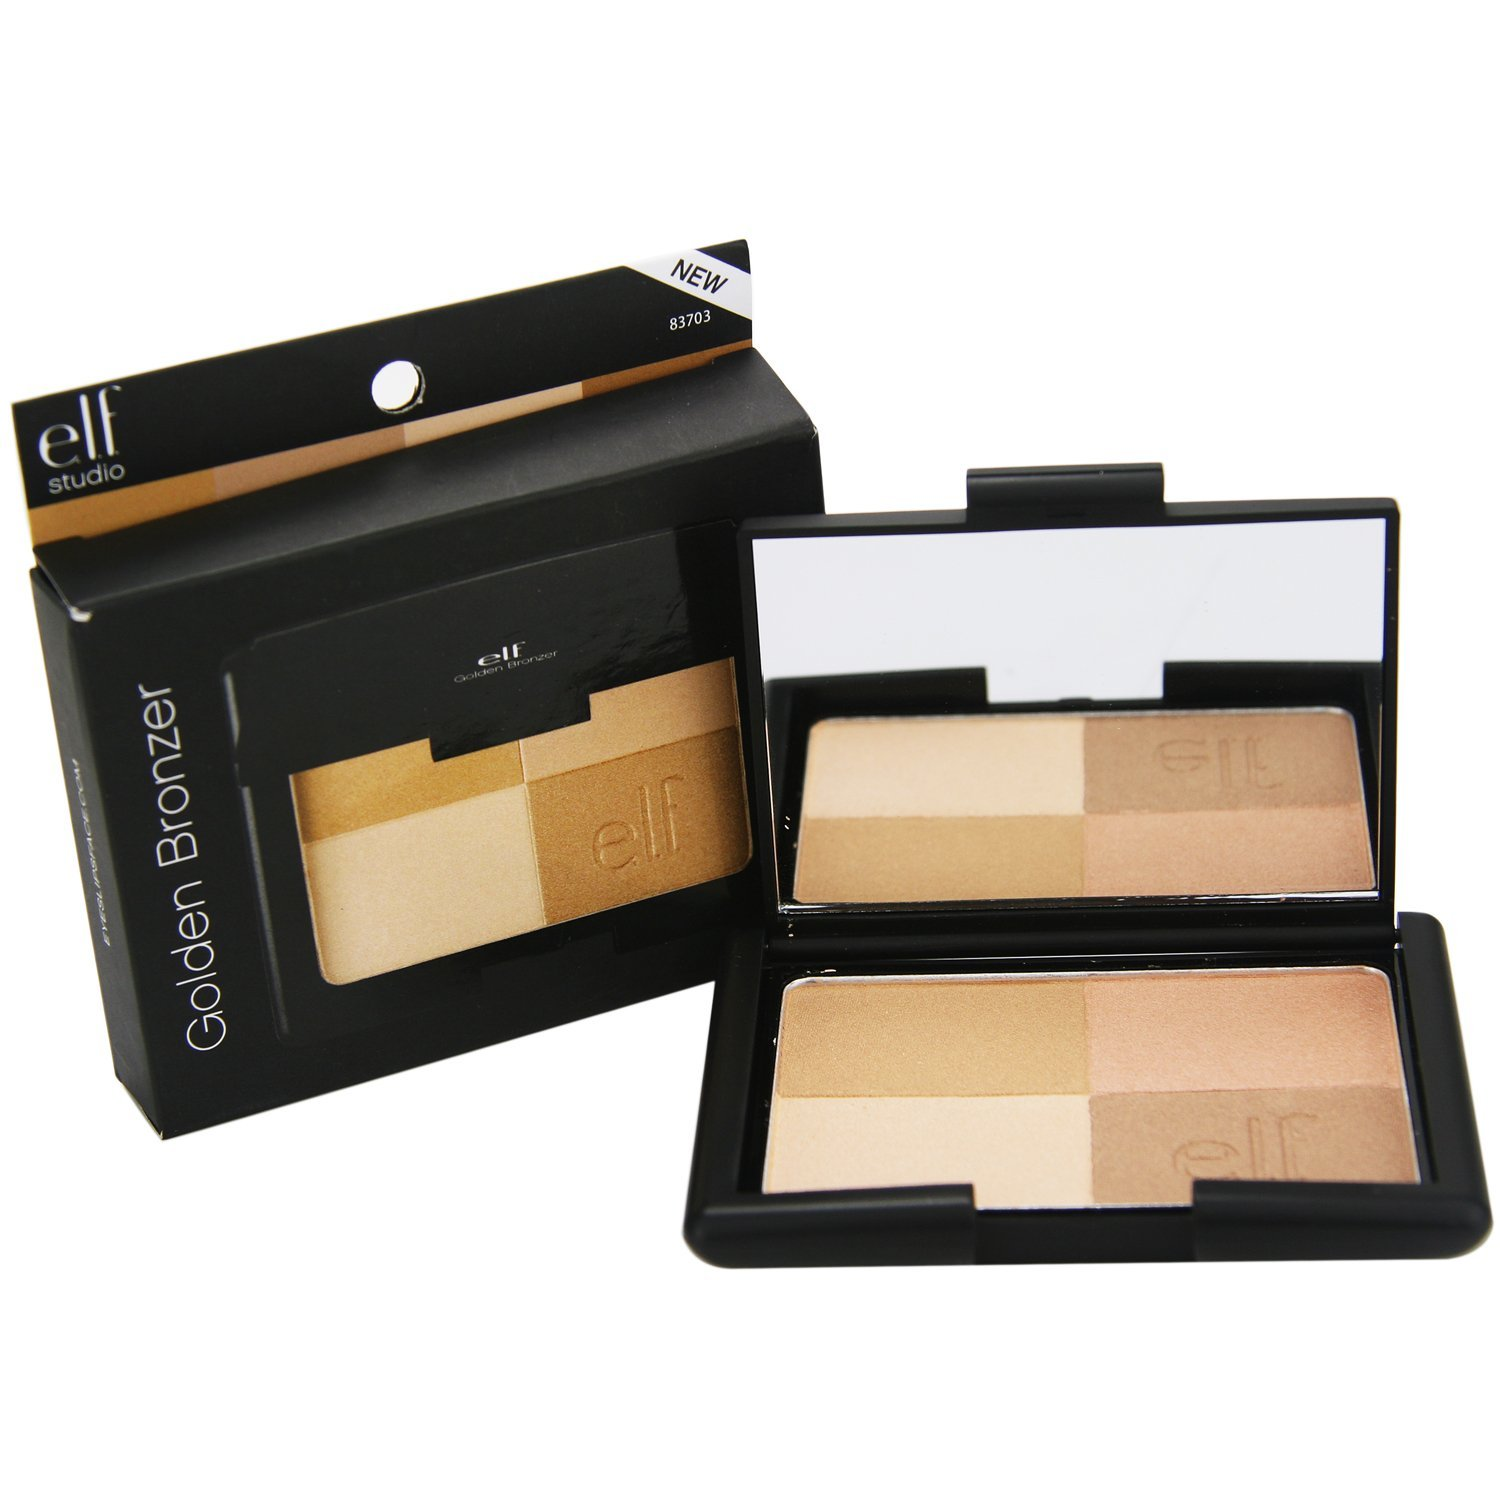 e.l.f. Bronzers, Golden Bronzer, Healthy looking glow By e.l.f. Cosmetics